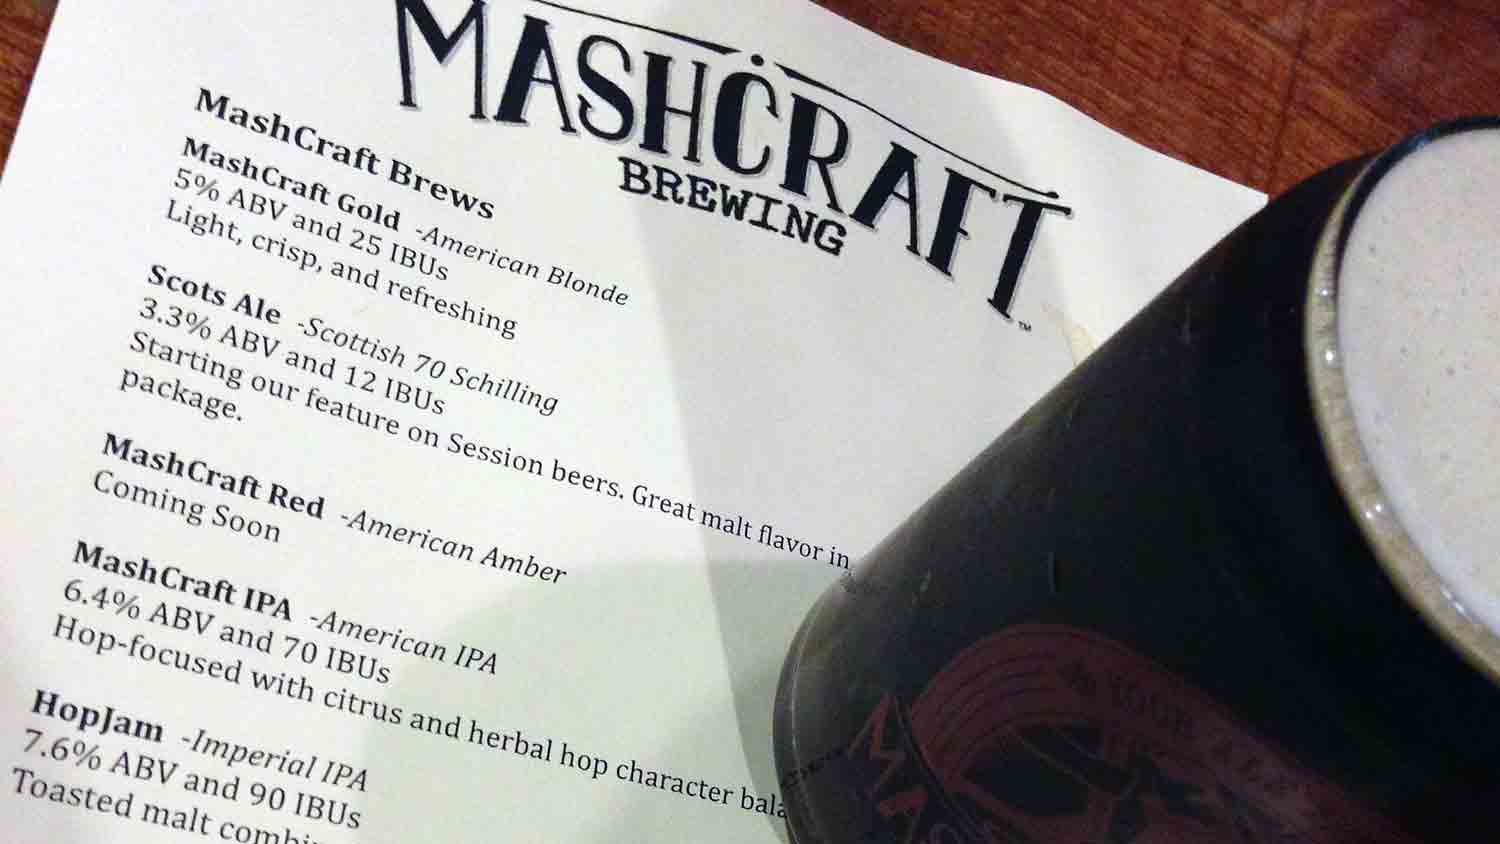 MashCraft Indy Taproom